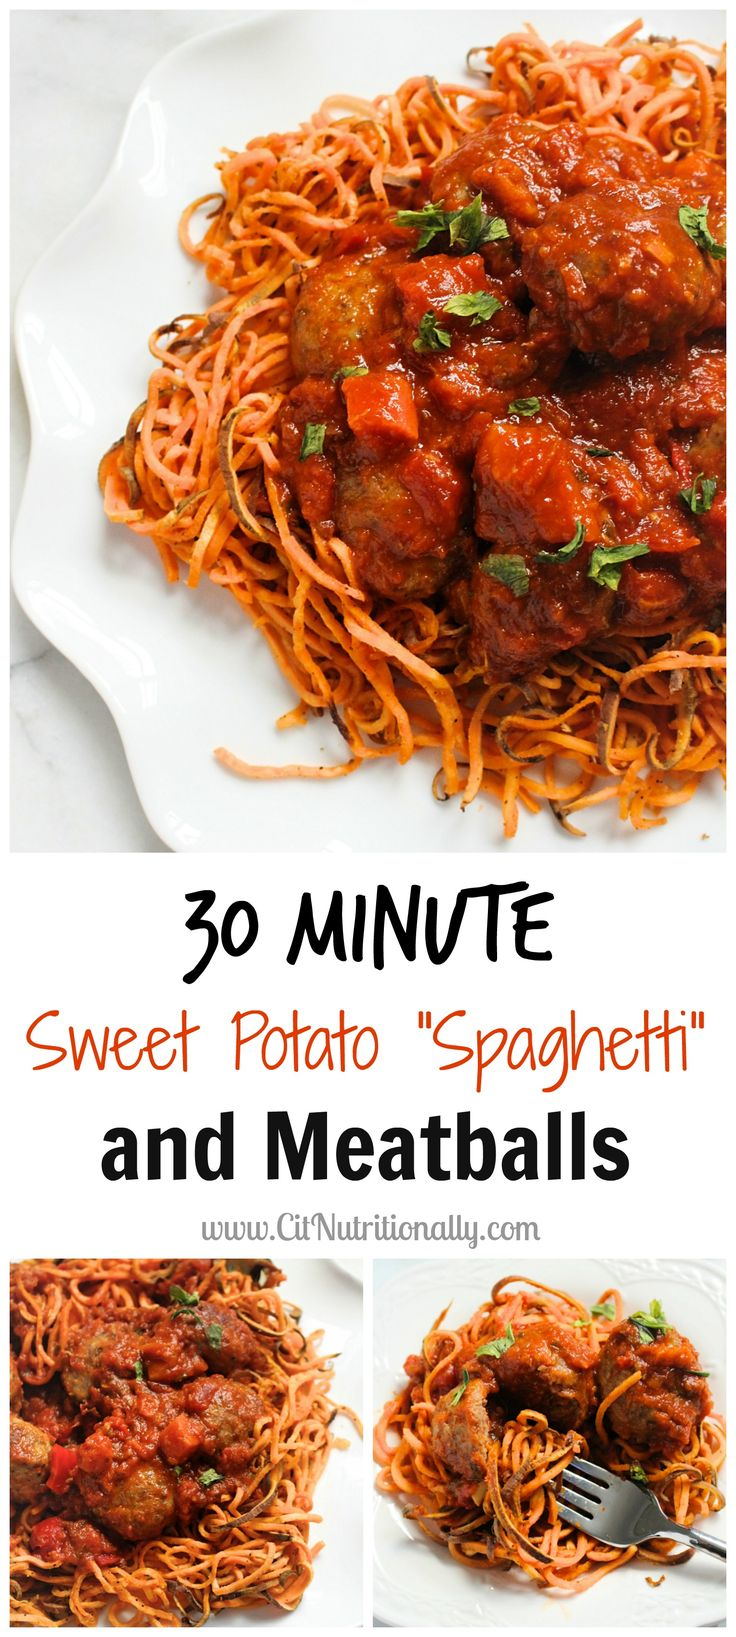 """I love this new take on Classic Spaghetti & Meatballs using """"Sweet Potato Spaghetti"""" and Carando meatballs!  Now you can have this delicious dish without all the carbs.    #ad"""